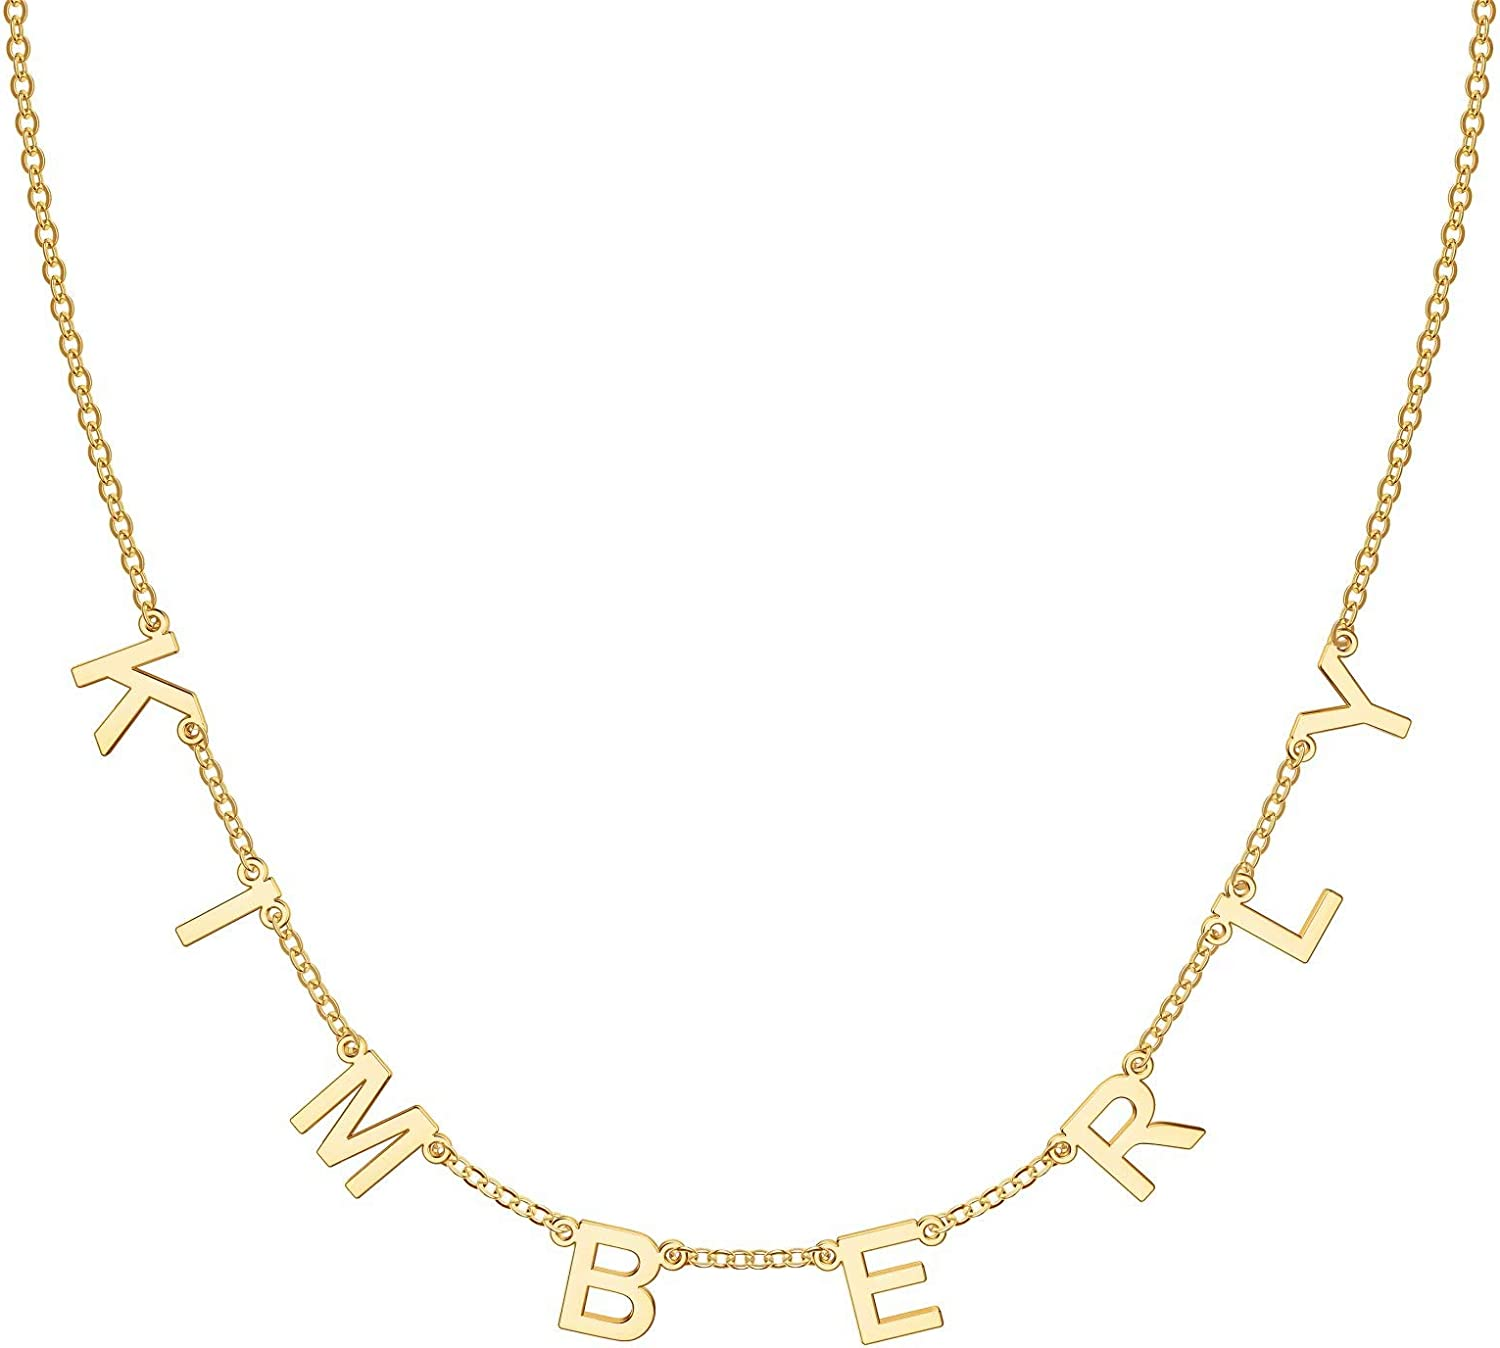 IEFSHINY Dainty Personalized Spaced Name Necklace, 14K Gold Plated Chain Dangle Letter Nameplate Choker Necklace Custom Spaced Letter Necklace with Hanging Name Jewerly Gifts for Women Girls Kids